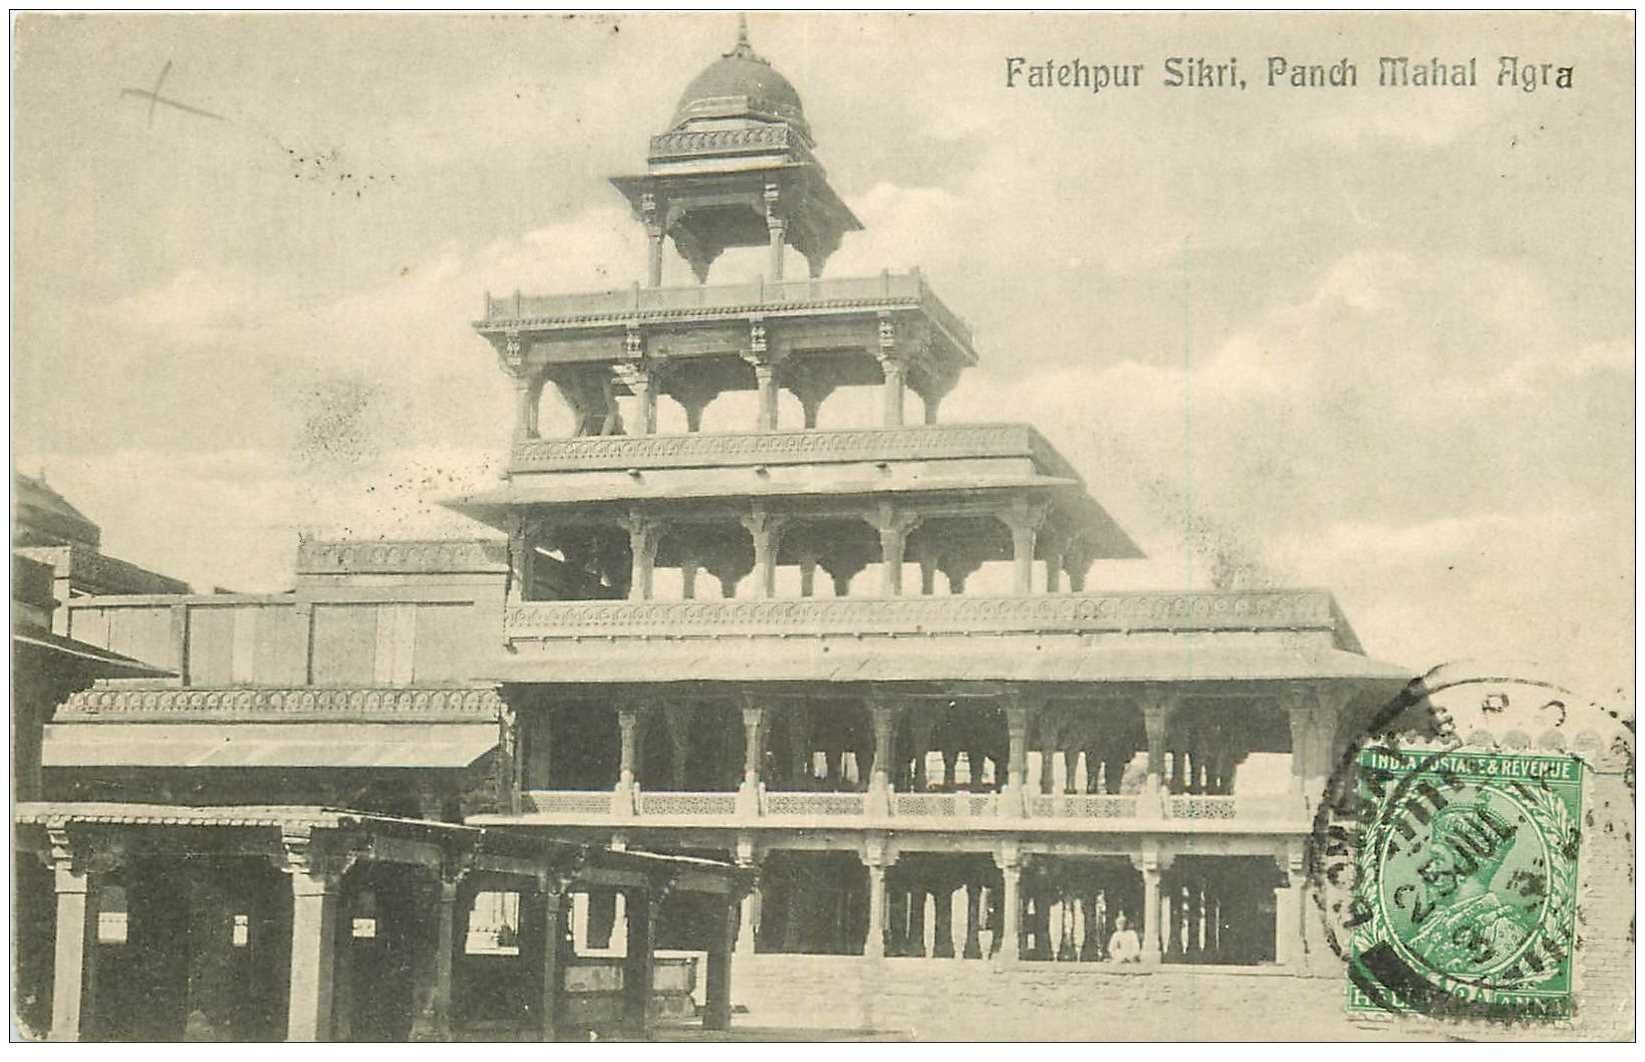 carte postale ancienne INDE. Fatehpur Sikri Panch Mahal Agra 1918